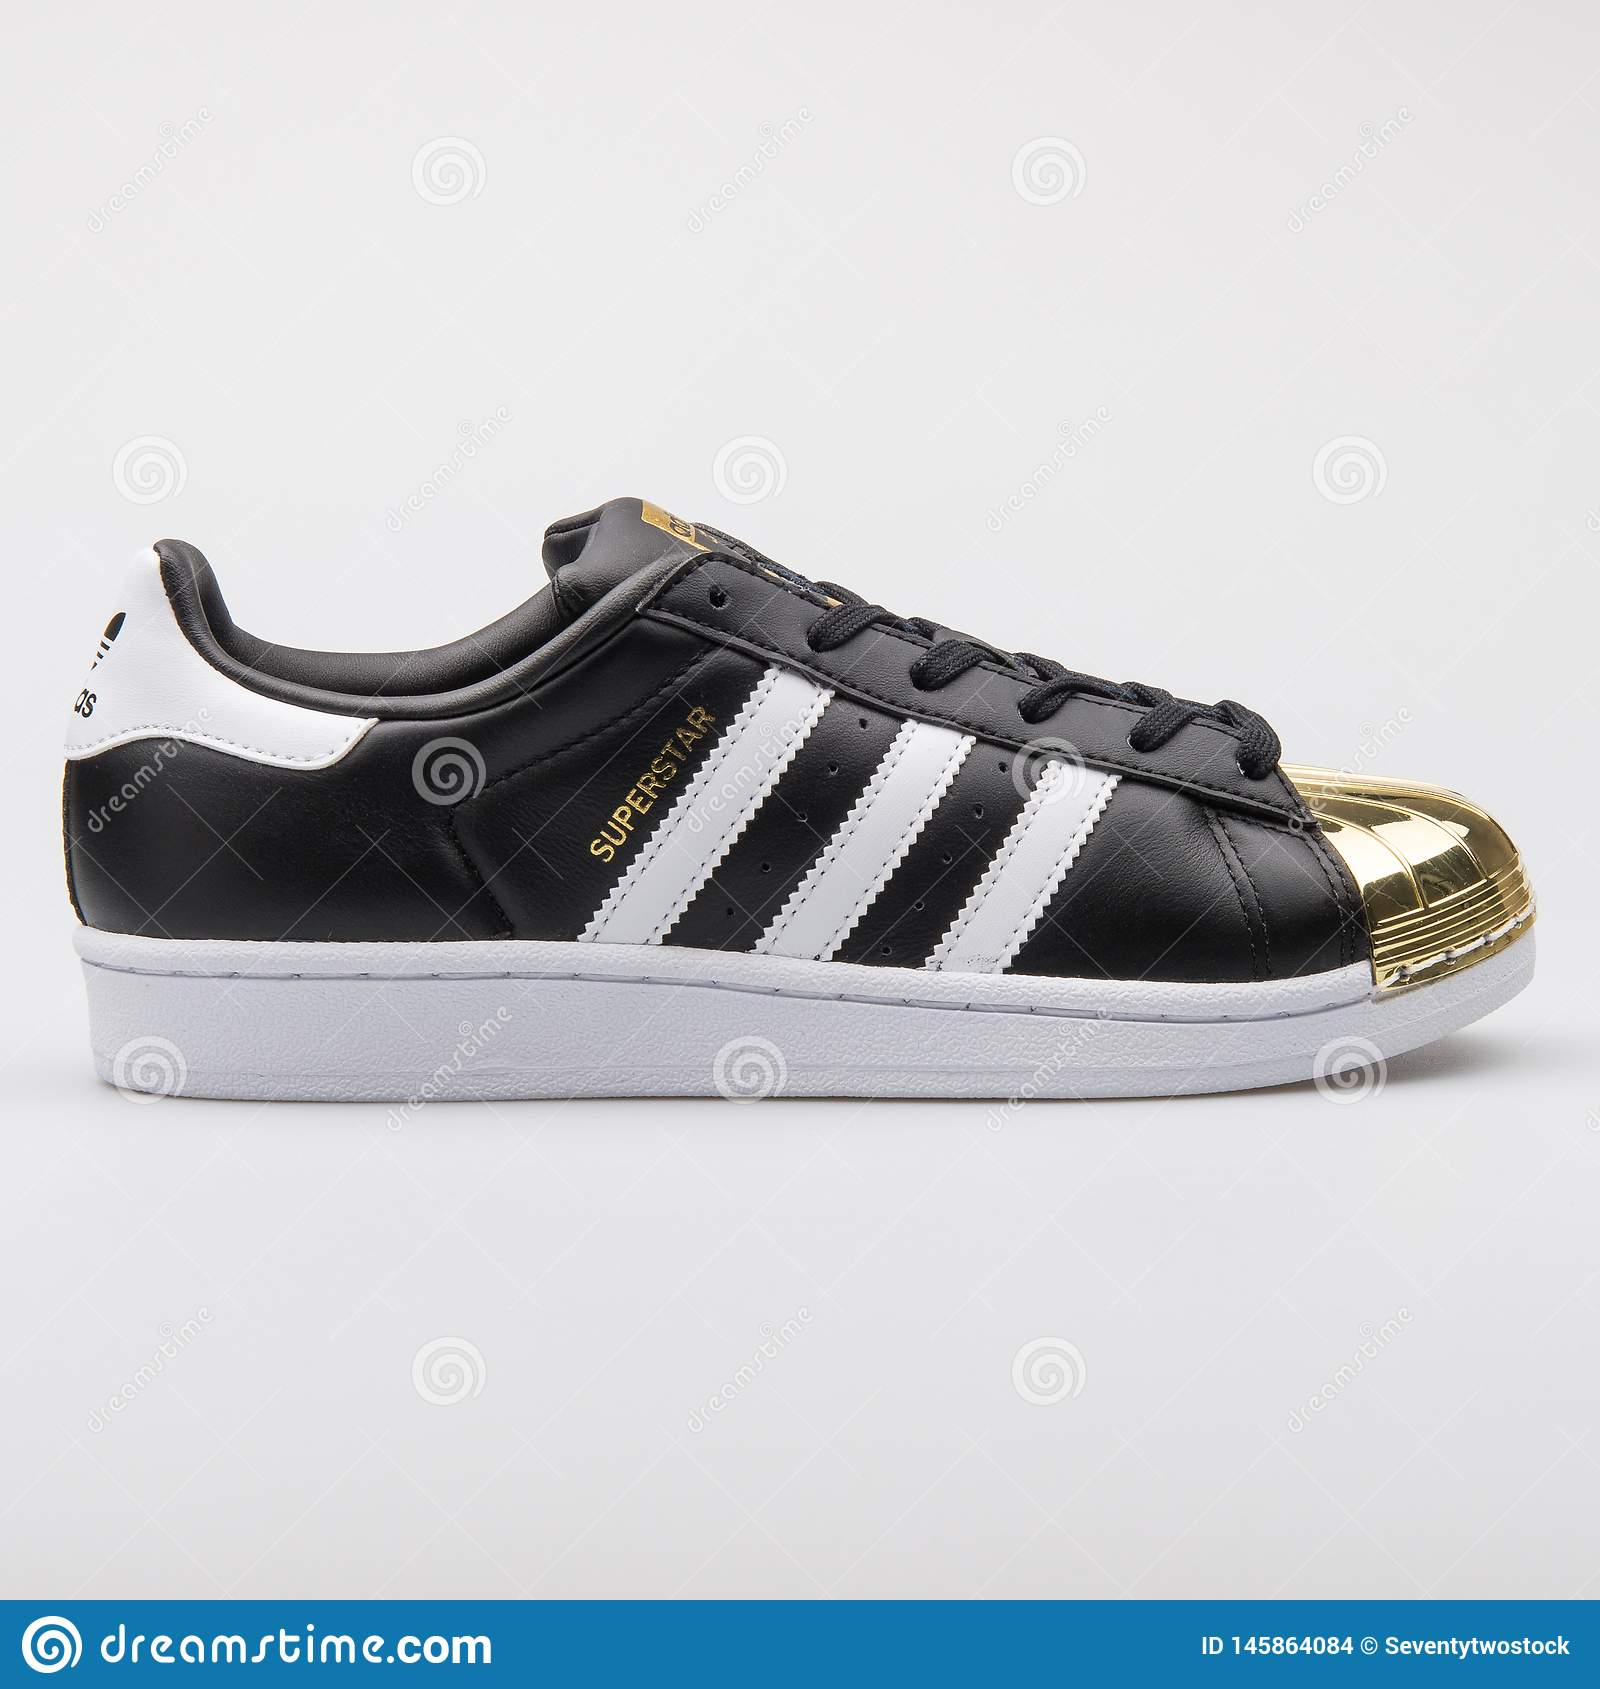 online store cdba7 351a2 Adidas Superstar Metal Toe Black And Gold Sneaker Editorial ...